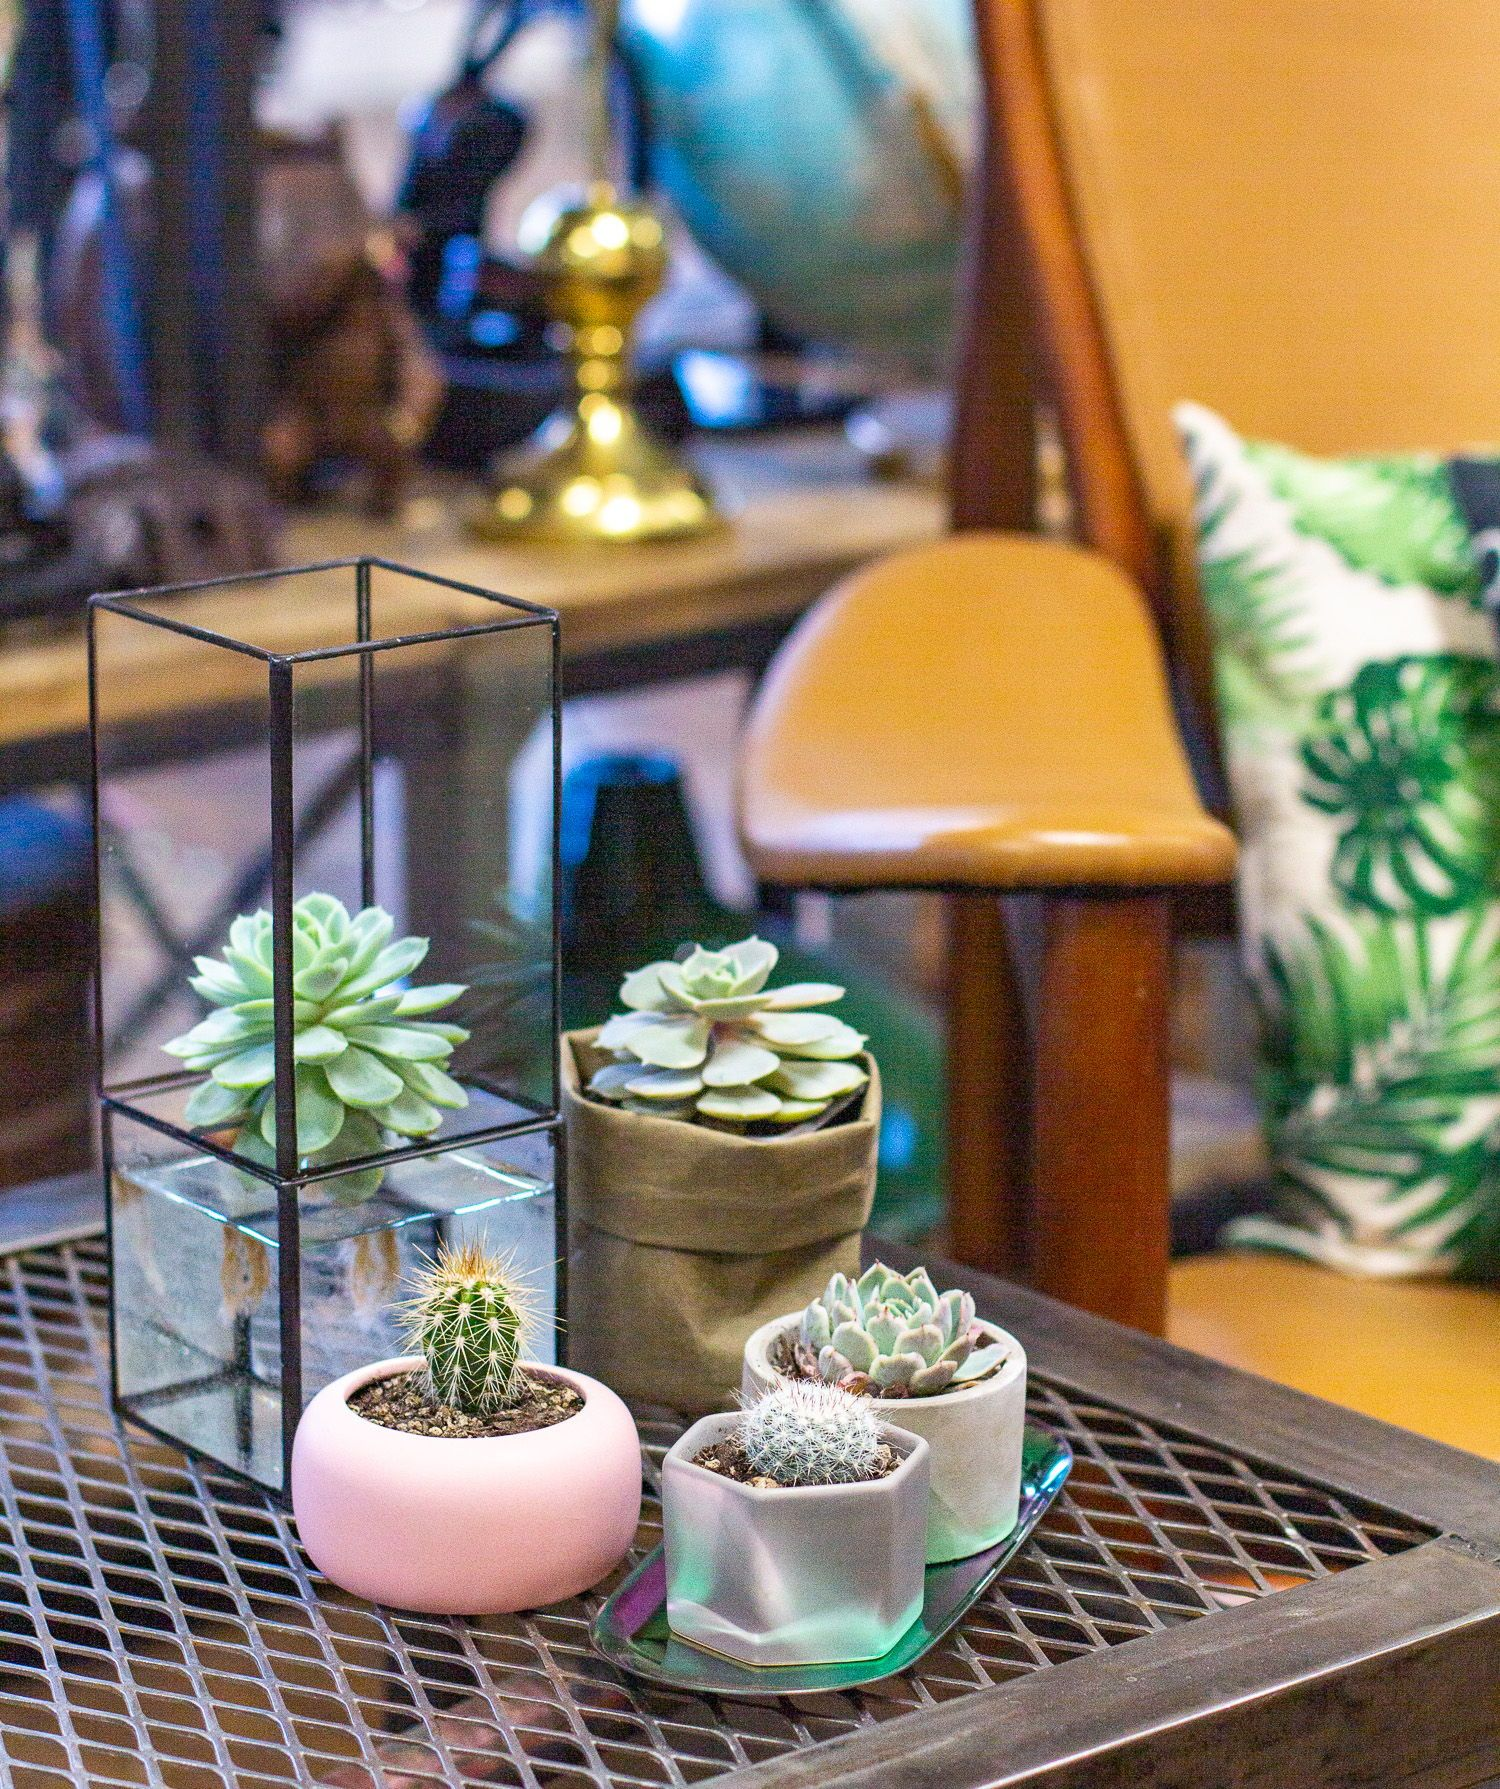 The Succulent Supply Company Weve carefully curated a selection of gorgeous plant pots and stylish propagation stations so that no matter your home decor or which pots yo...